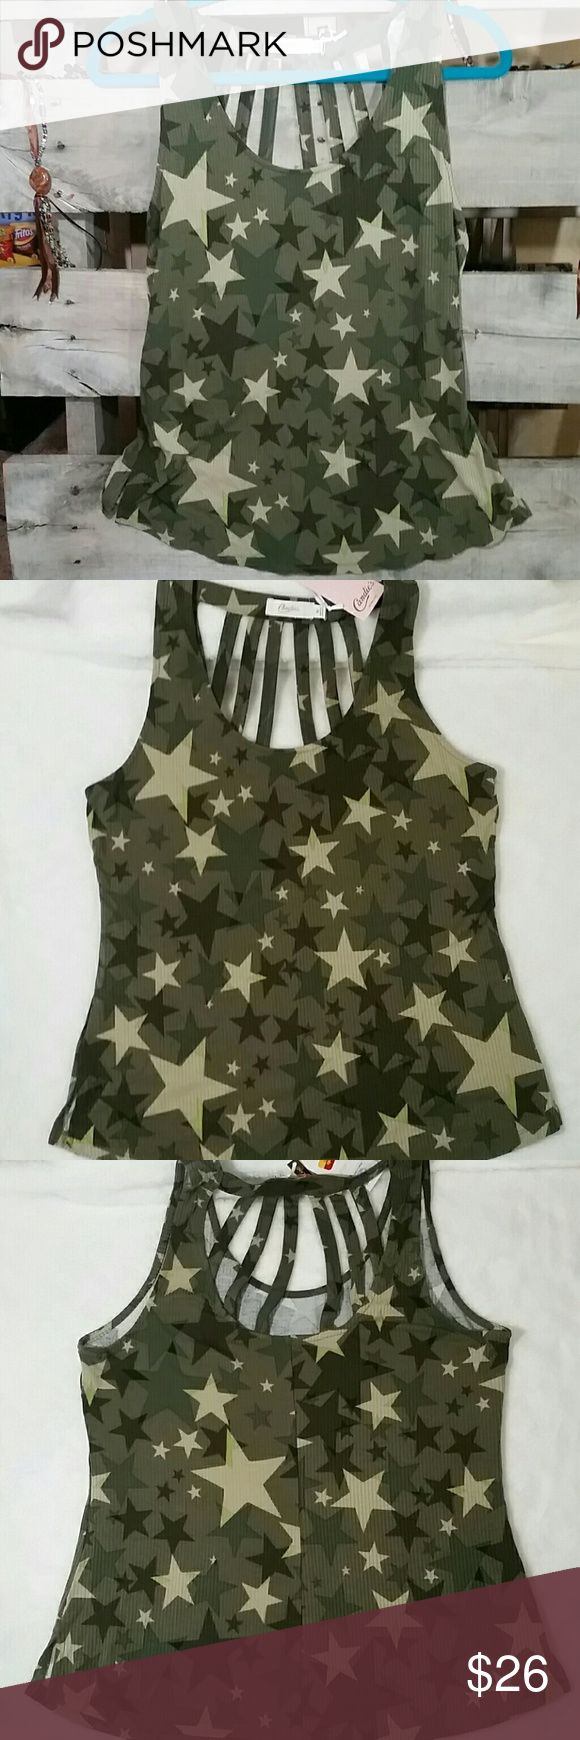 🆕NWT  Candies Ladder Back Star Camo Tank Candies LIMITED Quantity Ladder back Star Camo Tank! Very Stylish /Absolutely   must add to your Current Camo wardrobe! Candie's Tops Tank Tops